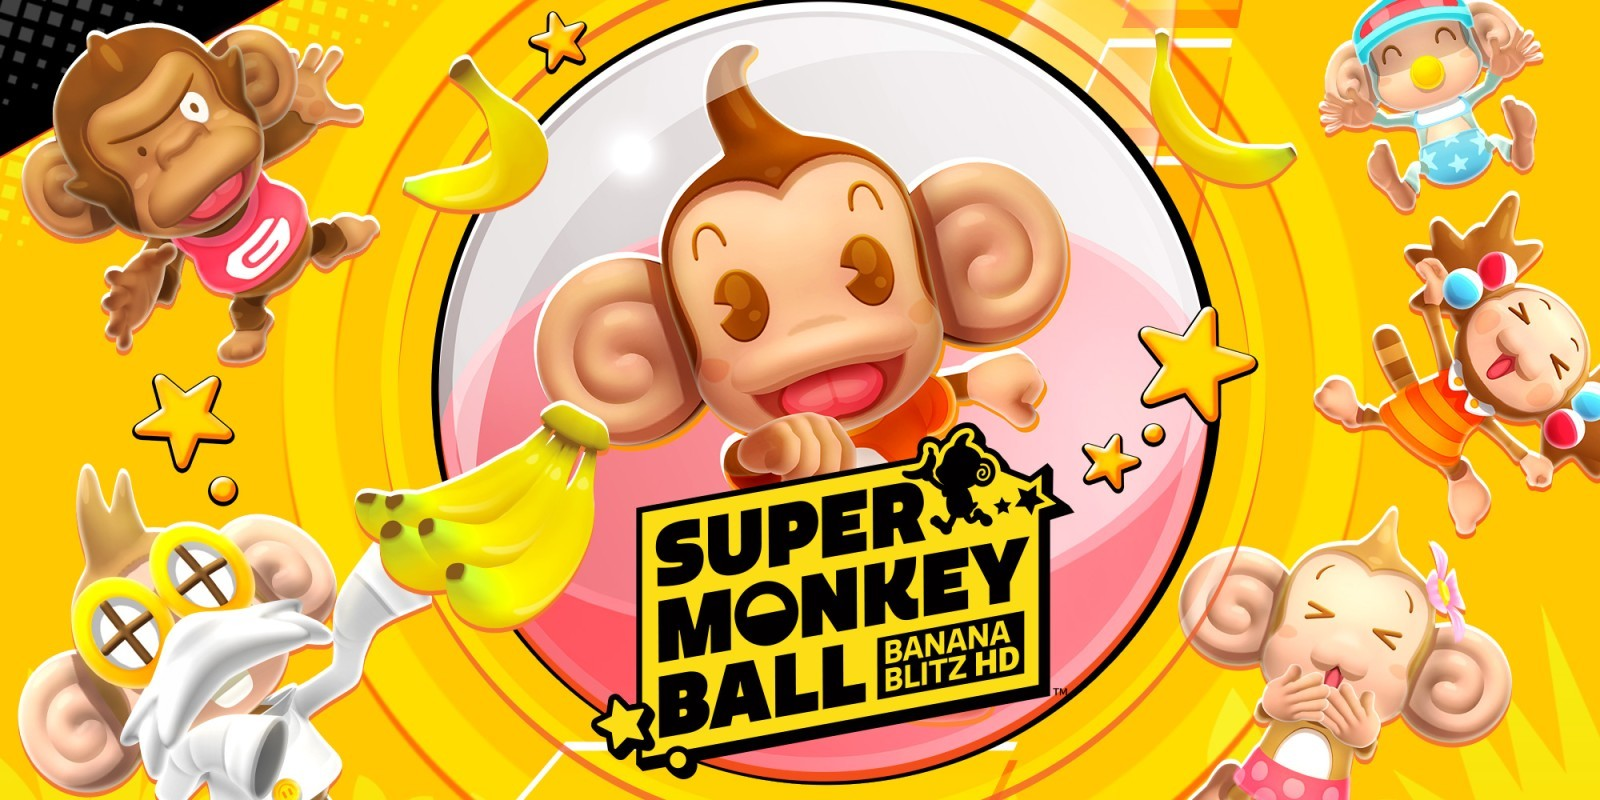 SUPER MONKEY BALL: BANANA BLITZ HD - Disponibile ora 15